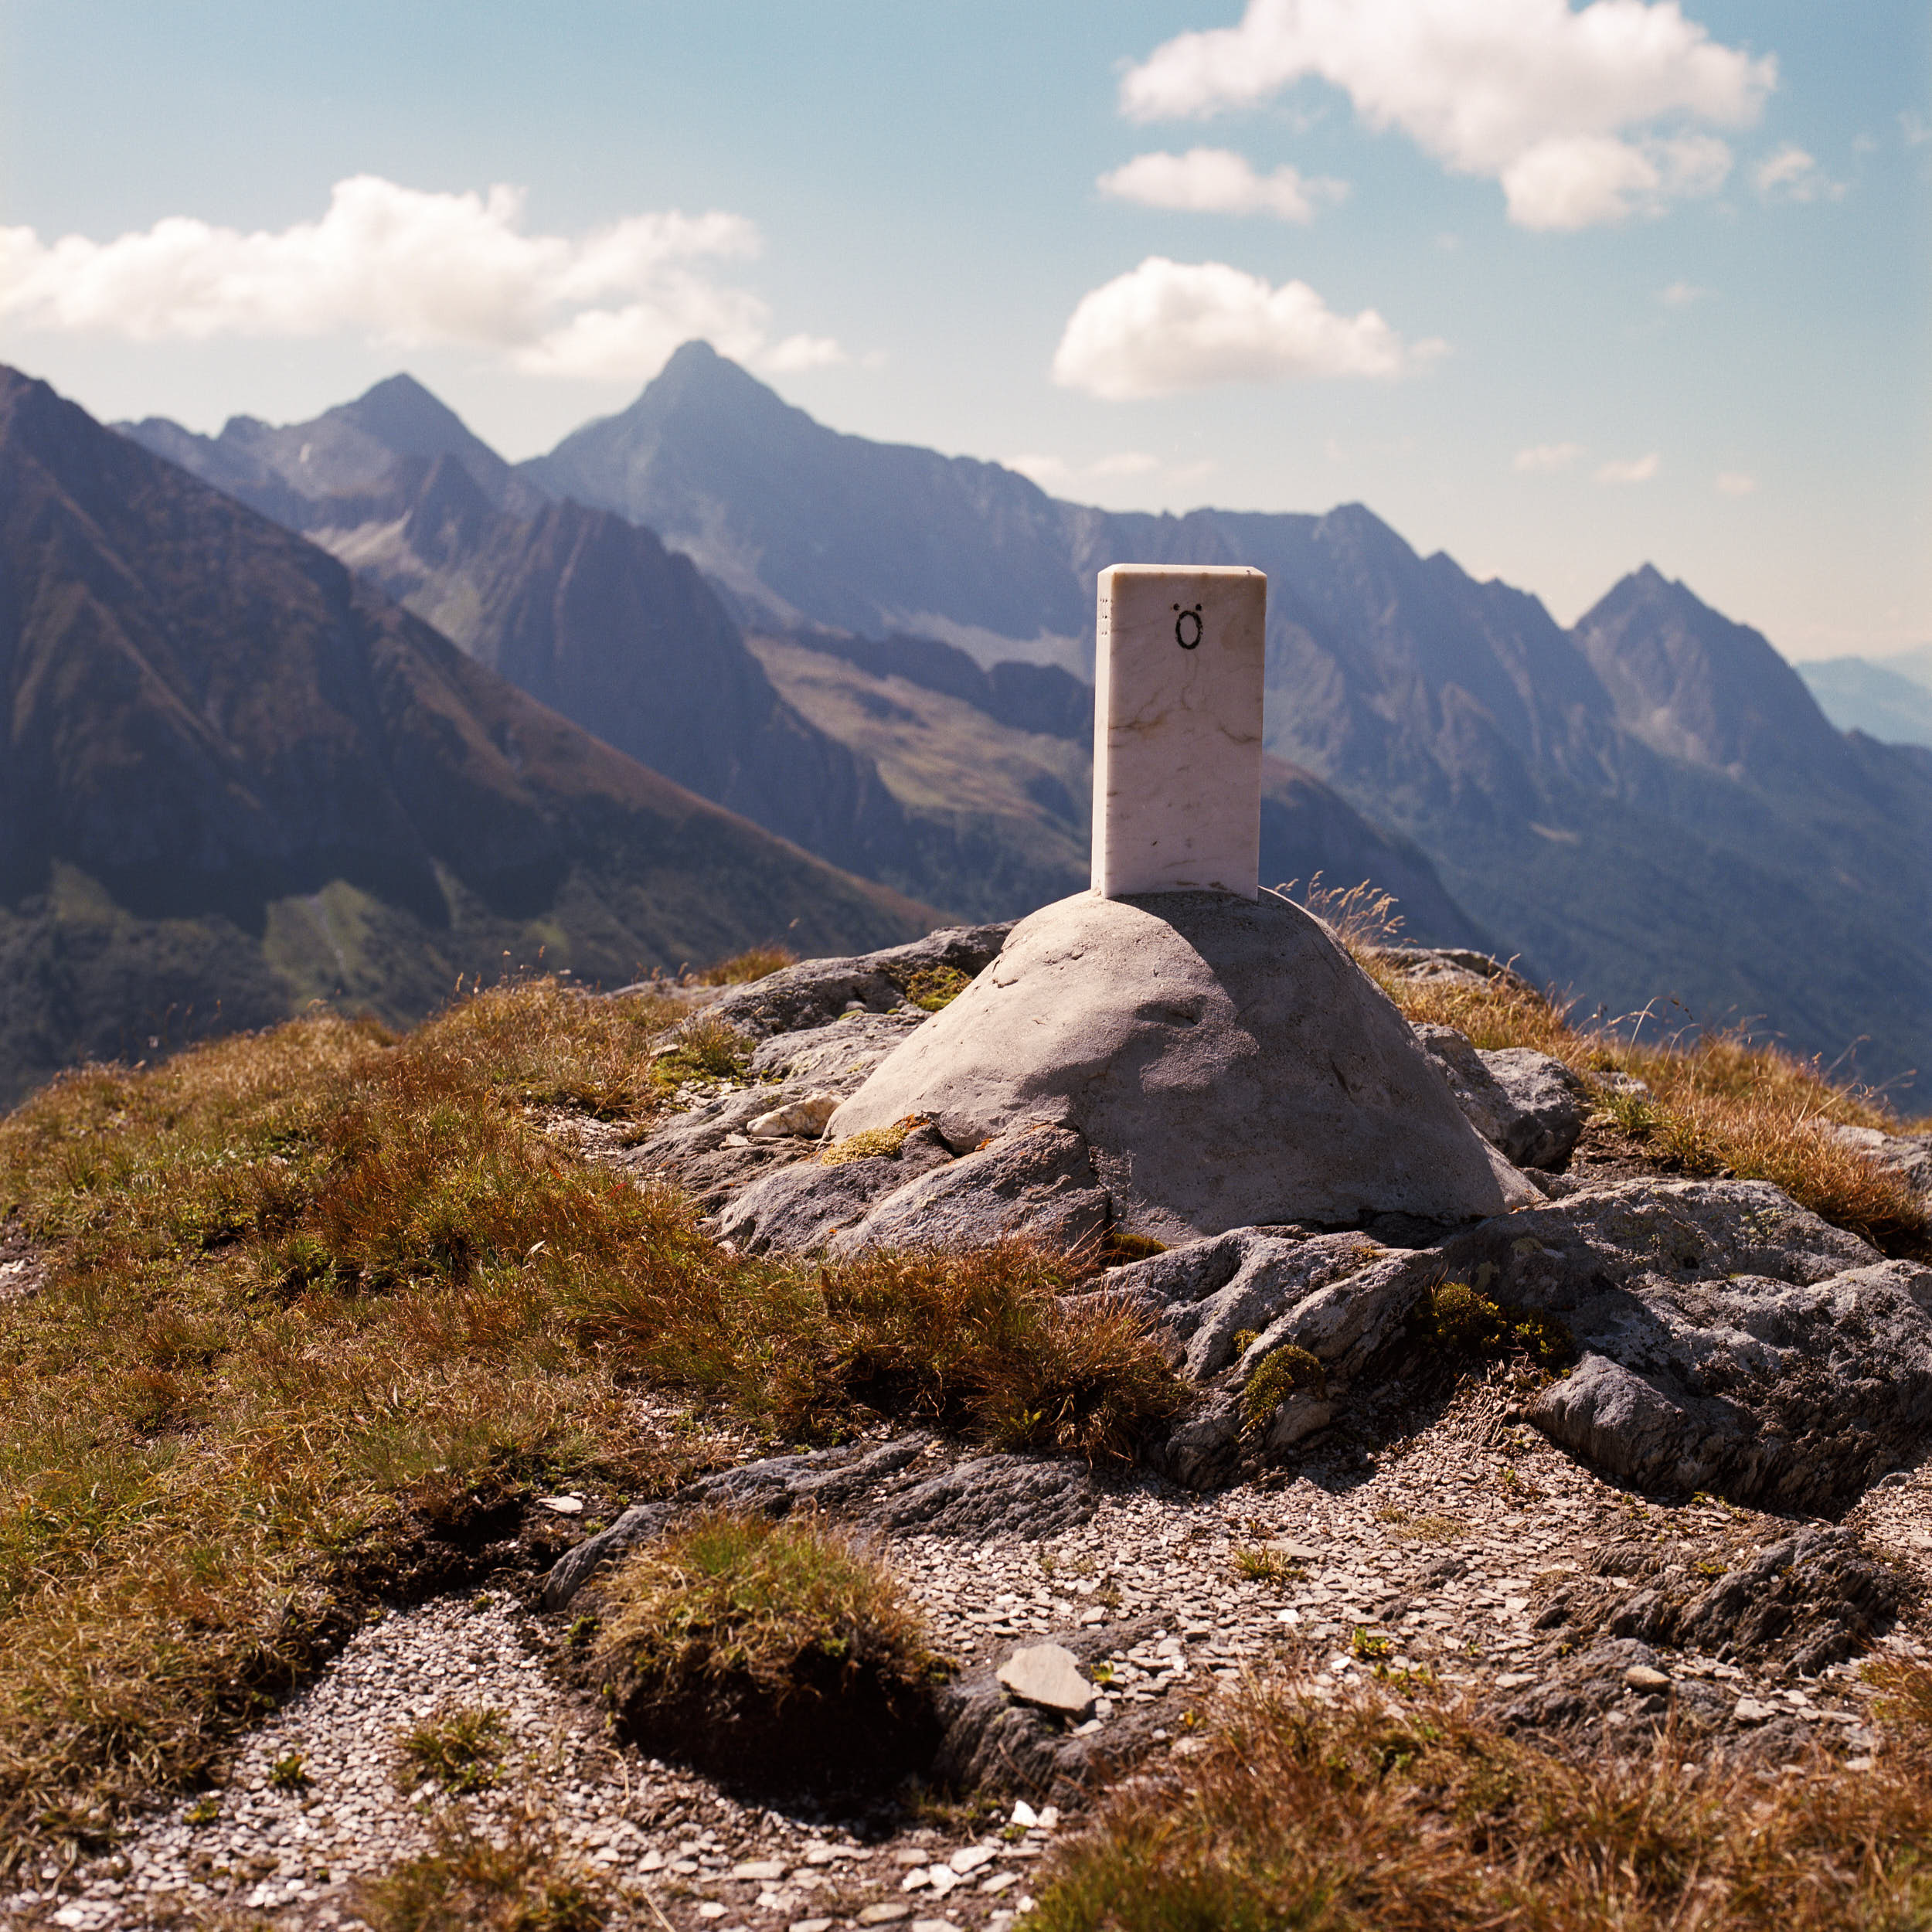 A marble stone which marks the border between Austria and Italy on a mountain pass.